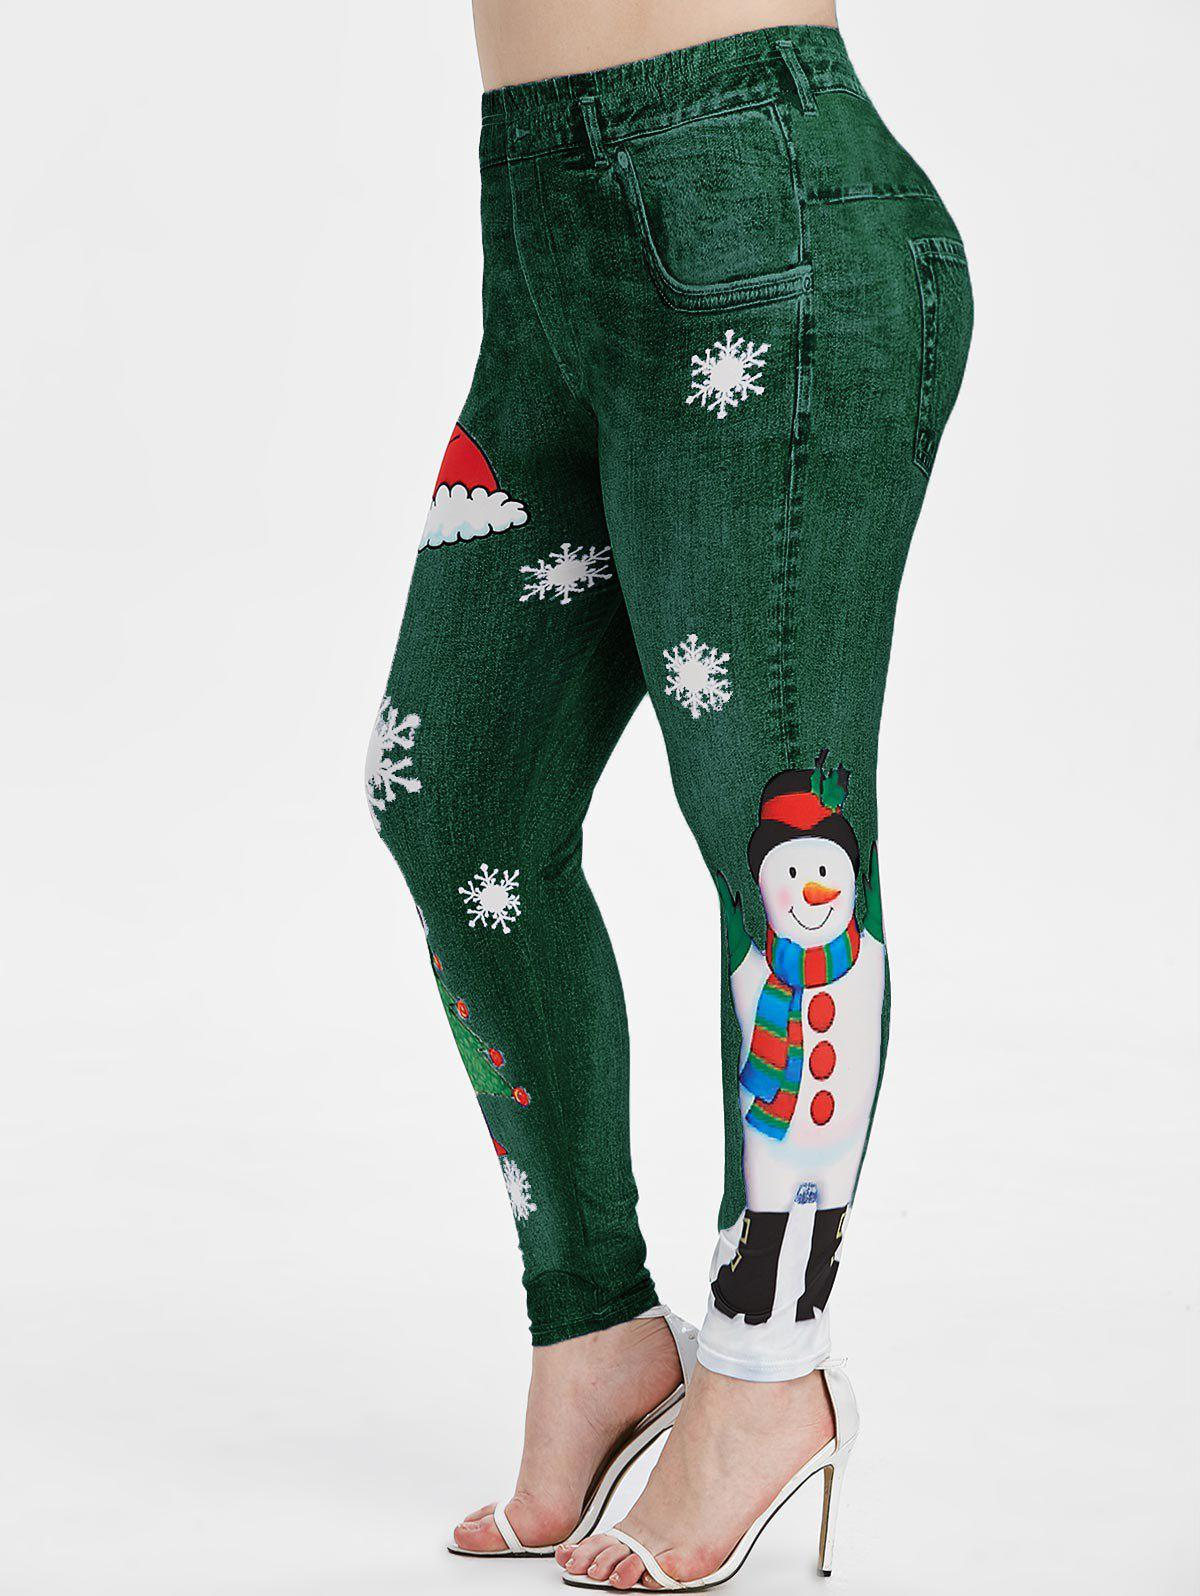 Plus Size Snowman Snowflake Print Christmas Jeggings - MEDIUM SPRING GREEN 2X